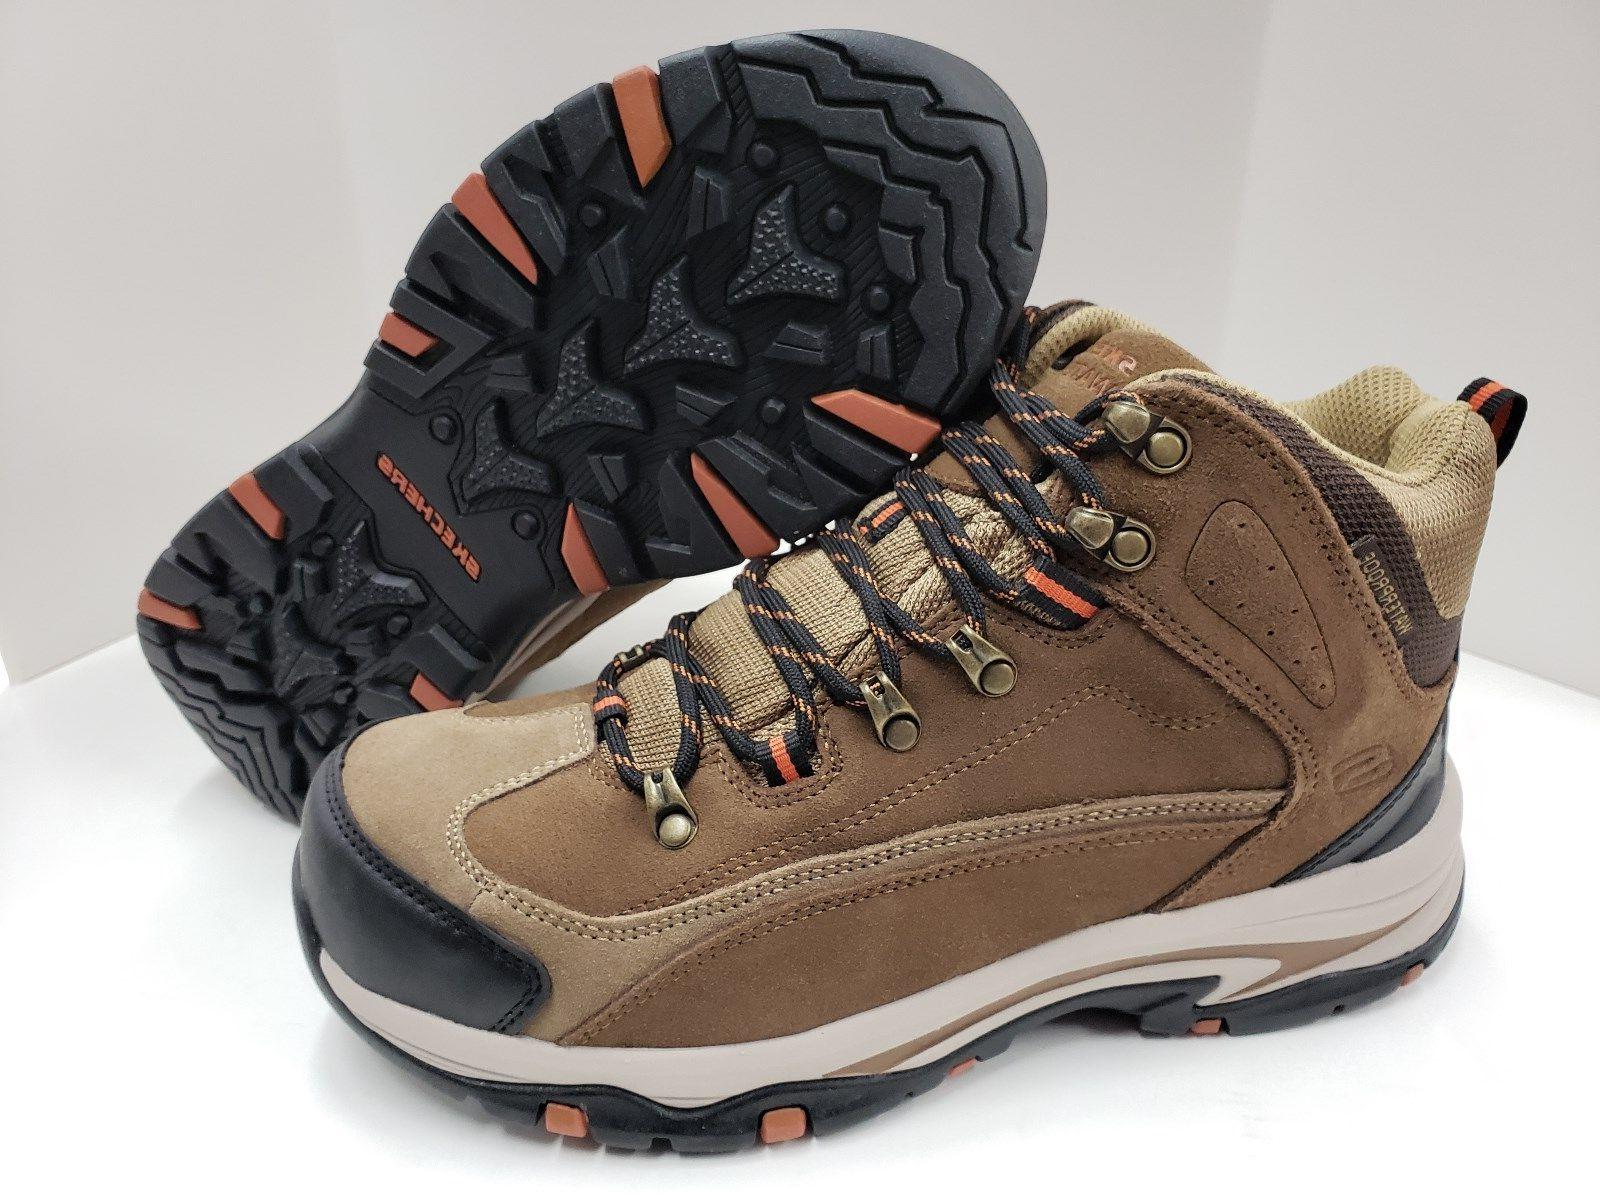 NIB Marso Hiking Boots 65671 Brown